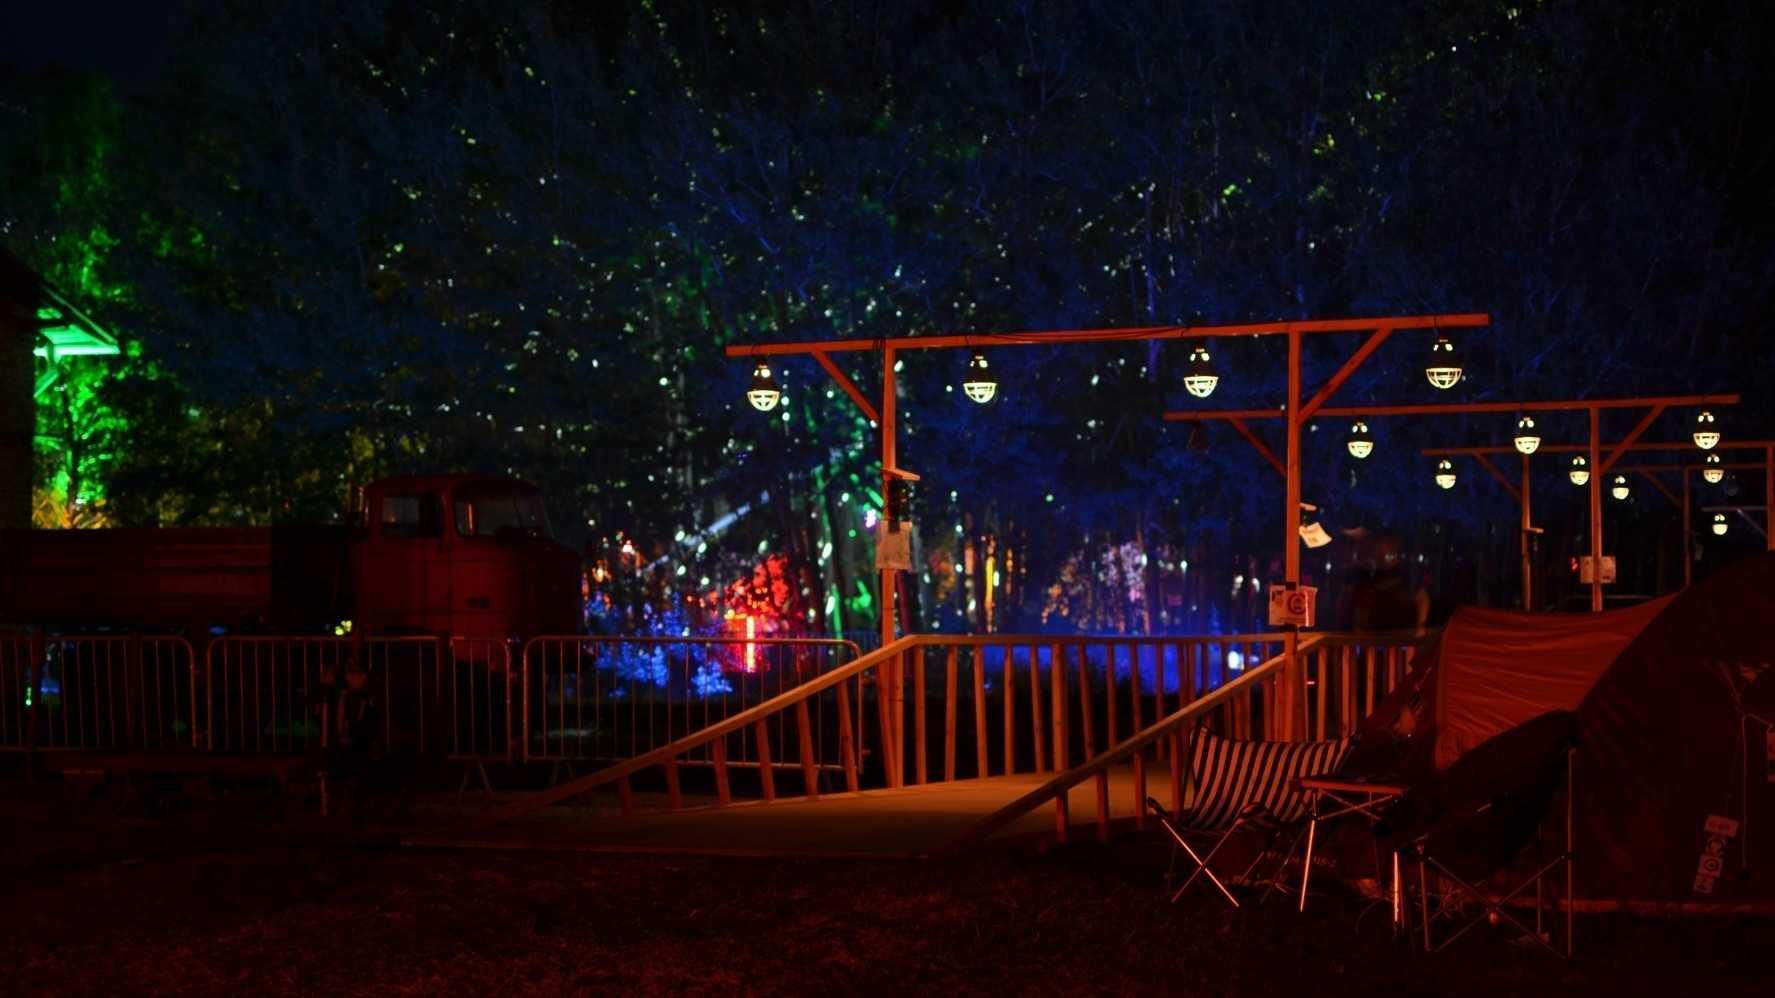 Bunte Lichter auf dem Chaos Communication Camp 2015